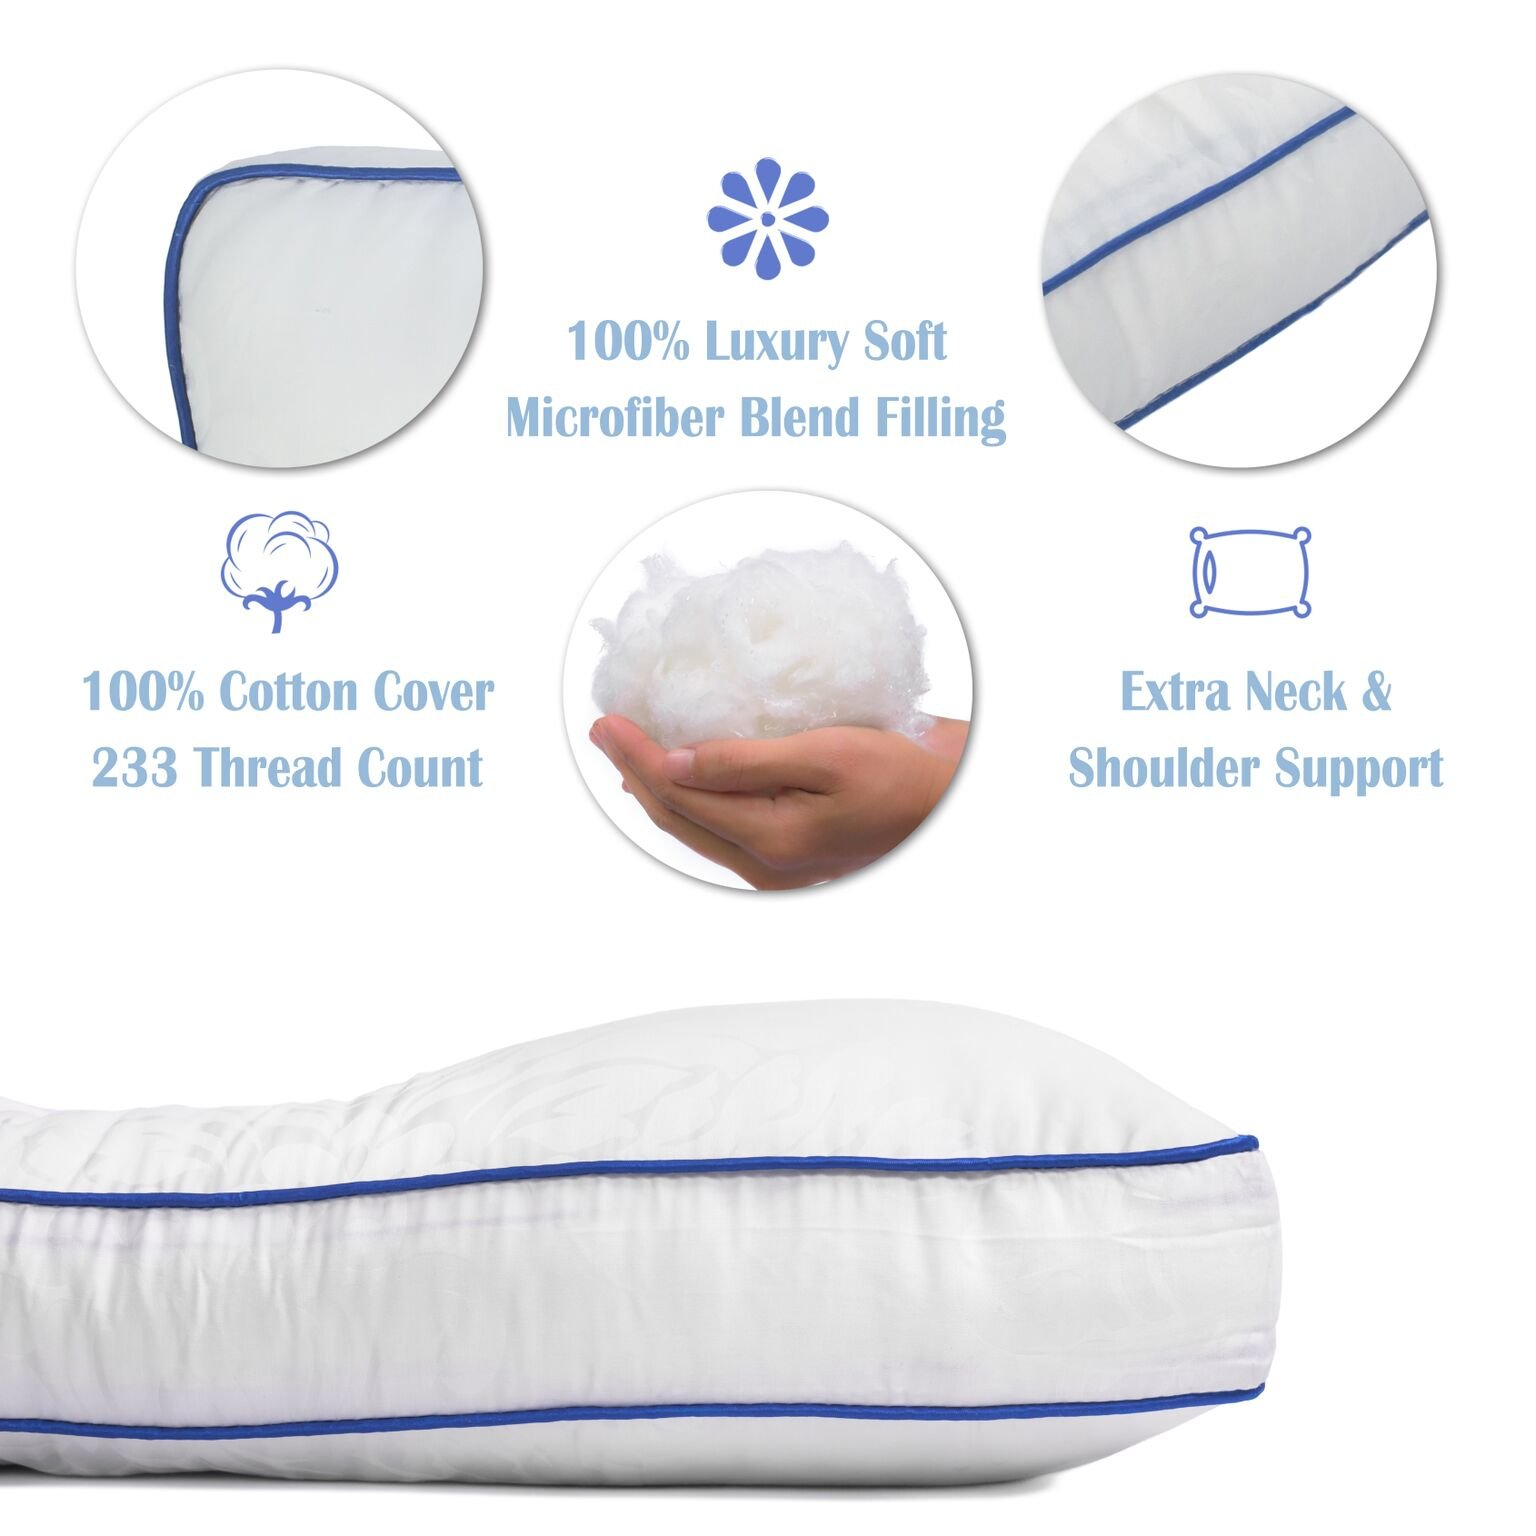 Nature's Guest Cervical Support Pillow - Fully adjustable, doctor recommended contour design - Helps reduce neck and back pain, improve cervical health - Hypoallergenic, For back and side sleepers by Nature's Guest (Image #7)